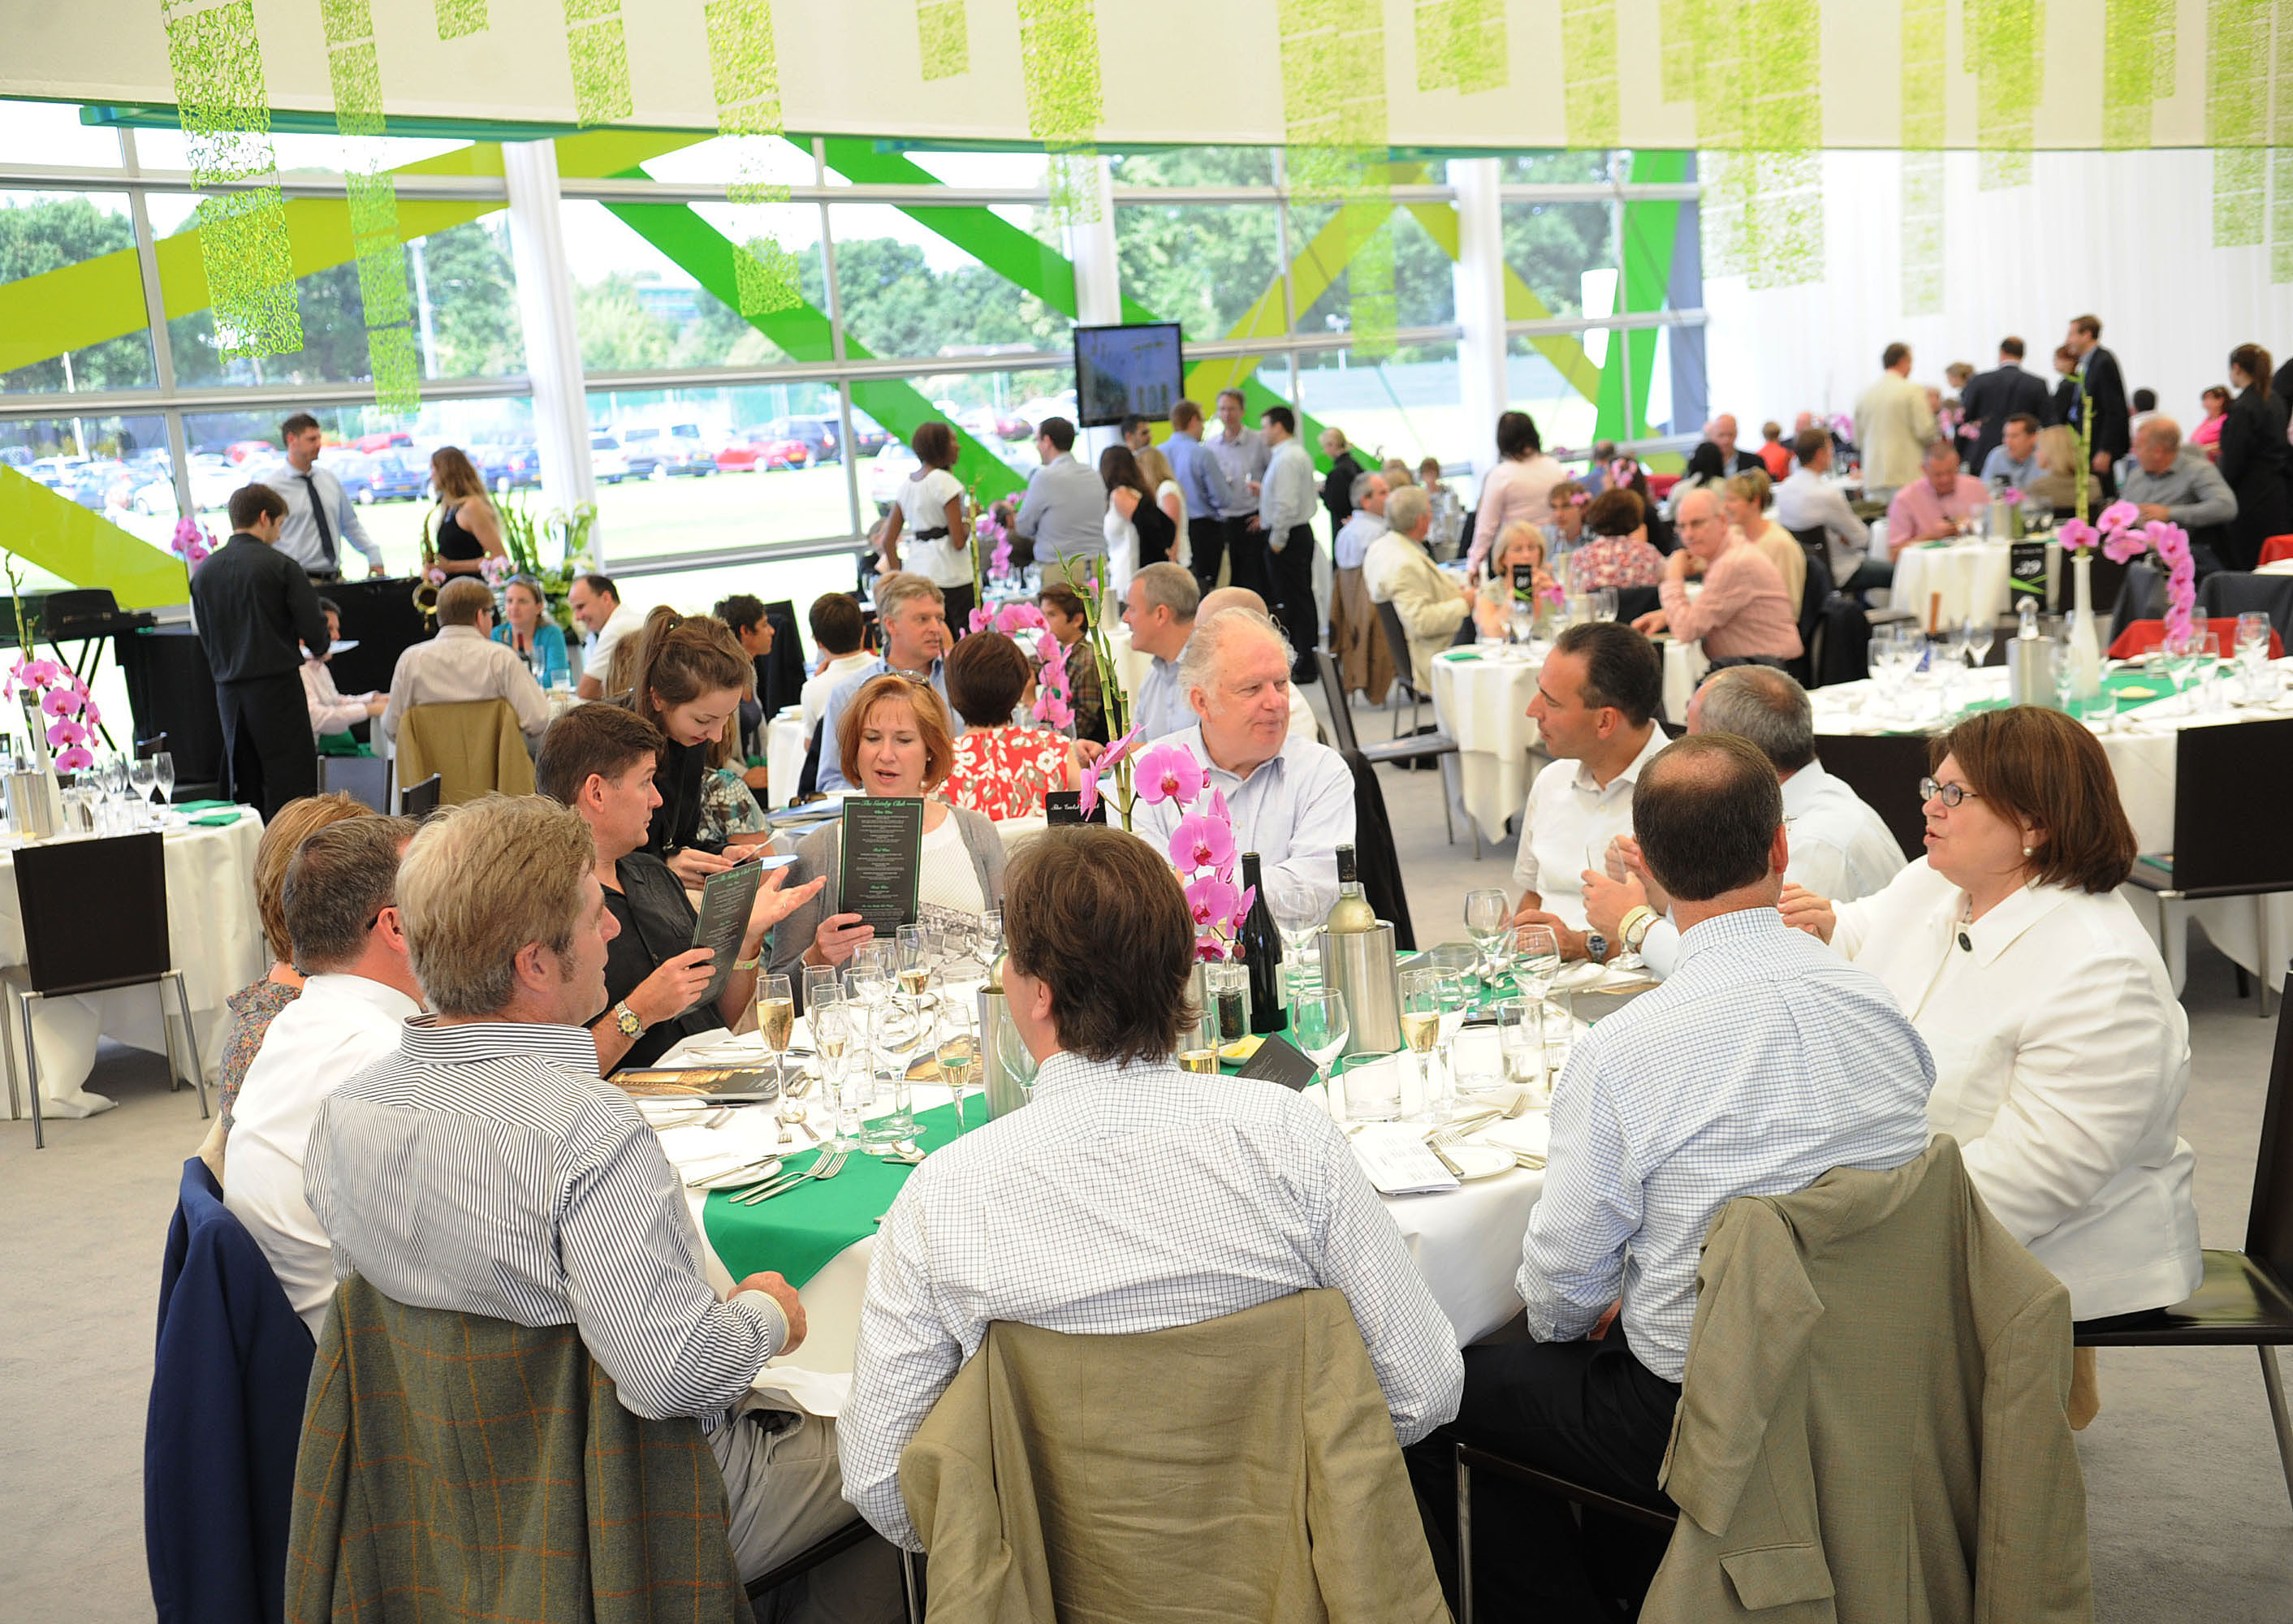 The Wimbledon Gatsby Club is another great hospitality option to entertain clients